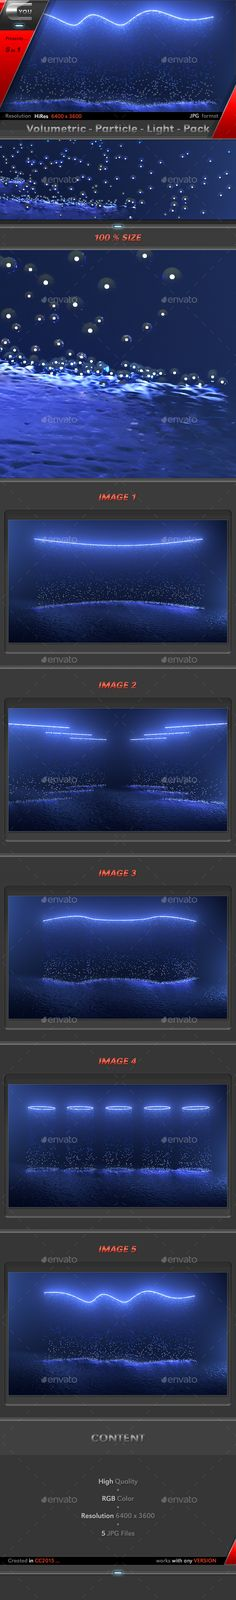 Volumetric Particle Light Pack - #Abstract #Backgrounds Download here:  https://graphicriver.net/item/volumetric-particle-light-pack/20325972?ref=alena994